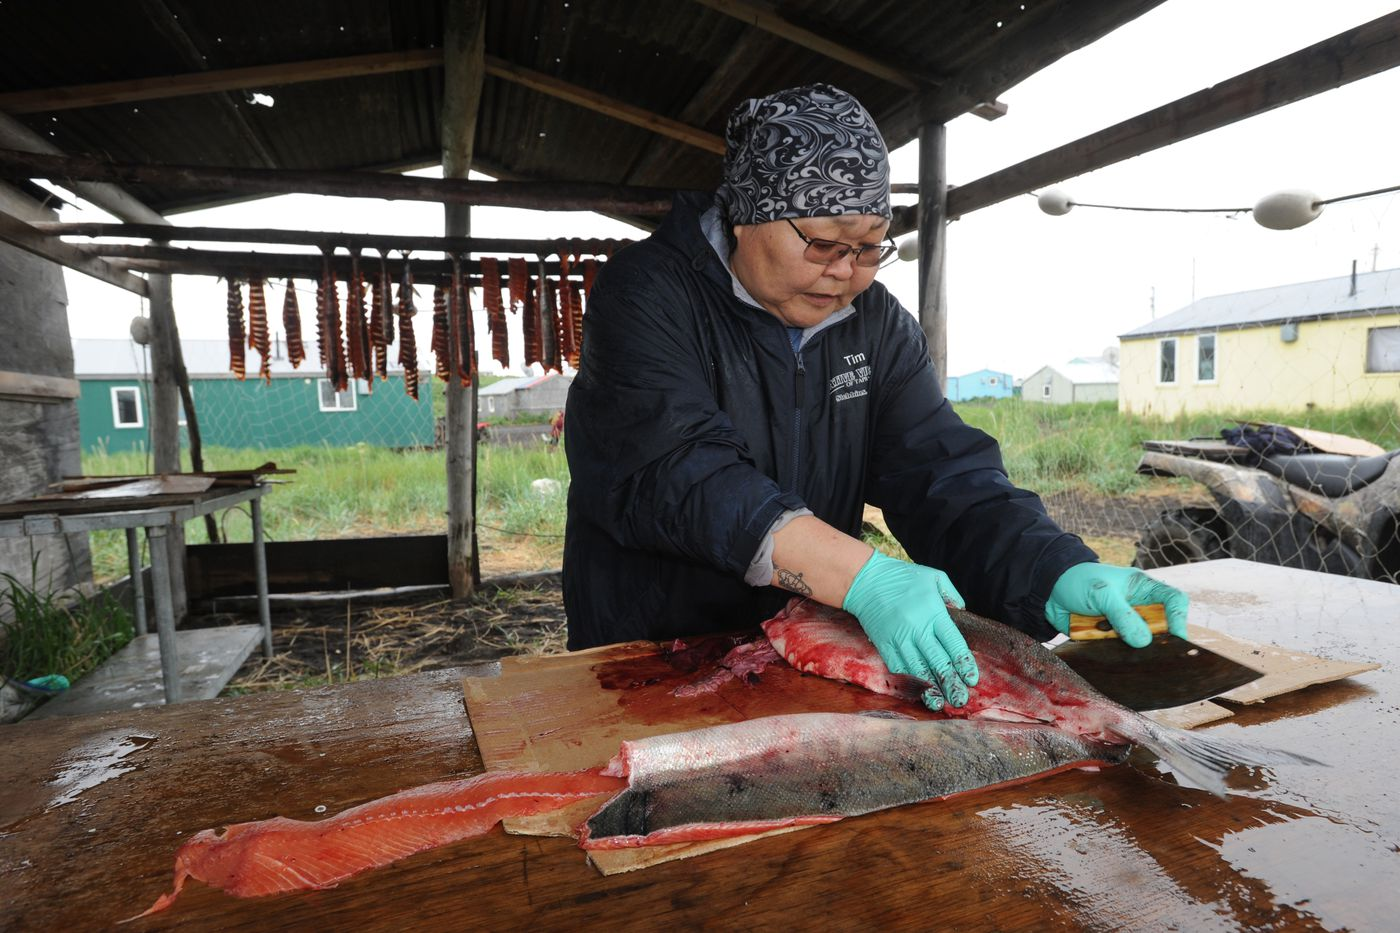 Tania Snowball cuts up salmon after a day working as the village health aide. As a first responder who relies on village police officers to handle emergencies at her side, Snowball said she couldn't do her job without the local village police officers. (Bill Roth / ADN)